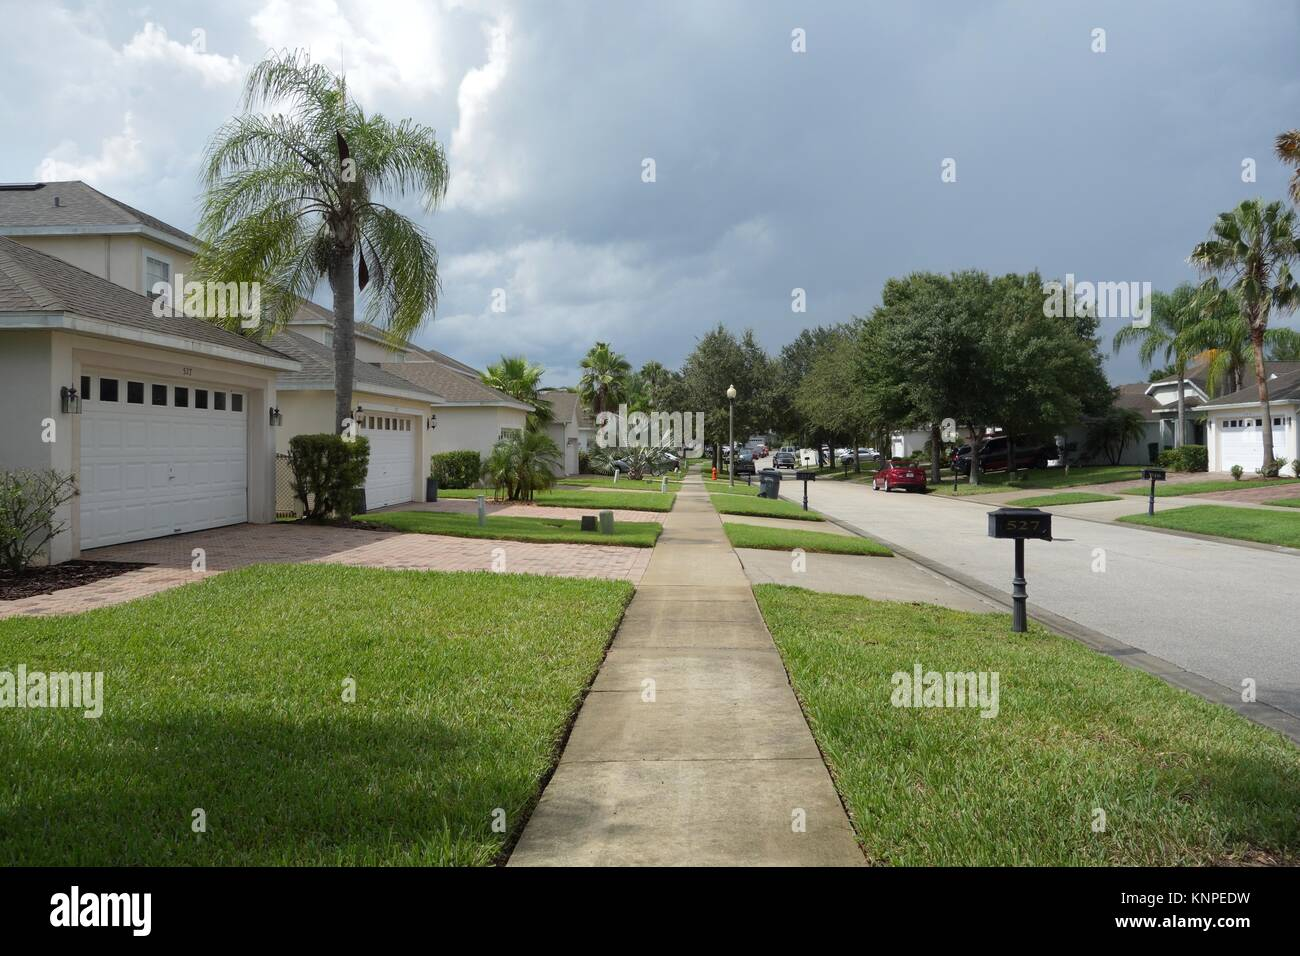 Sidewalk and manicured lawns of luxury villas in Highland Reserve Golf community, Davenport, Florida, USA Stock Photo